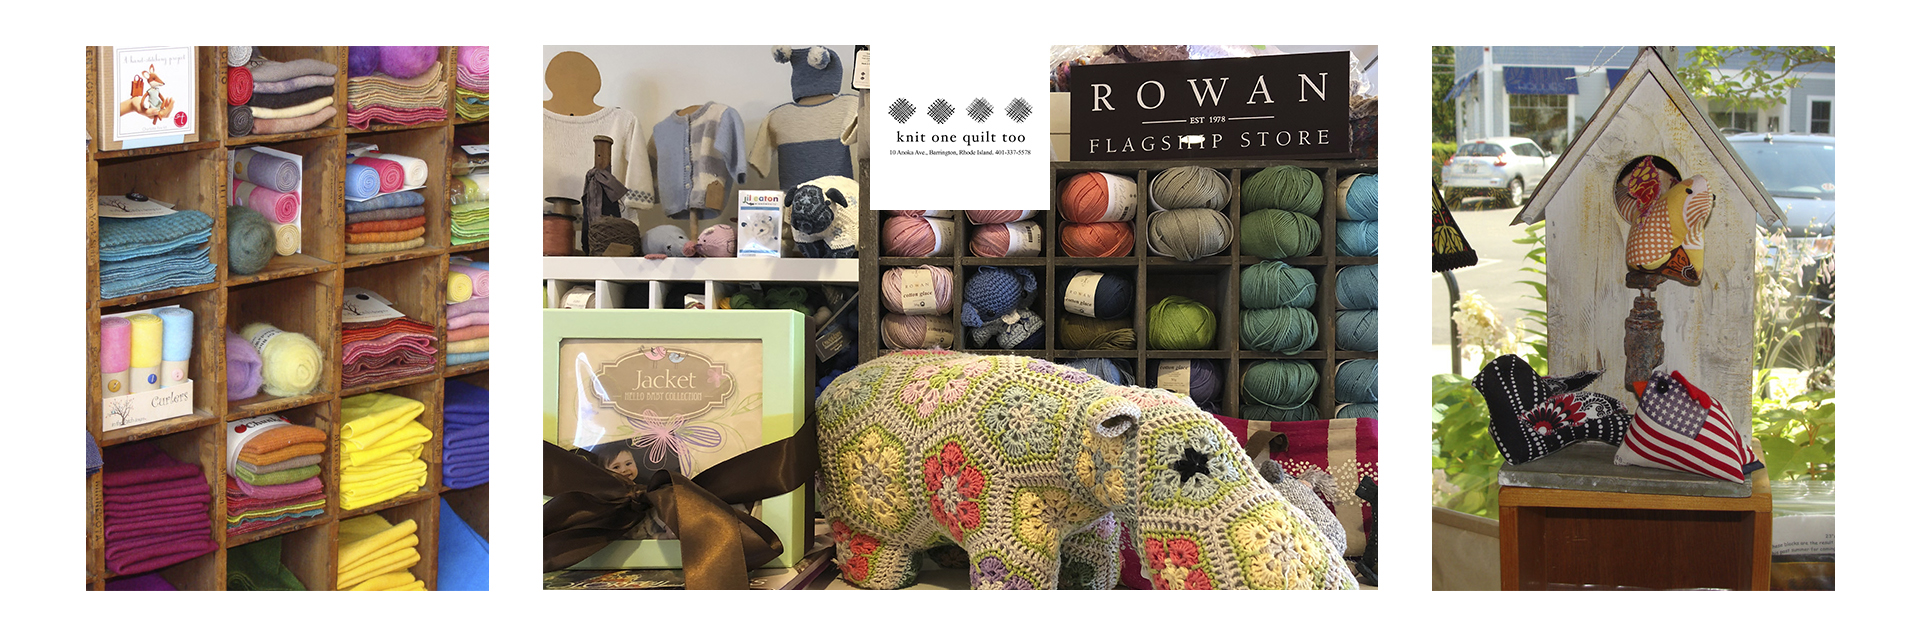 KnitOneQuiltToo has from its opening been a Rowan Retailer. I have loved Rowan from my early childhood days, it was the company that set the bar for other yarns to aspire too. That is still the case and KnitOneQuiltToo carries a multitude of Rowan yarns.